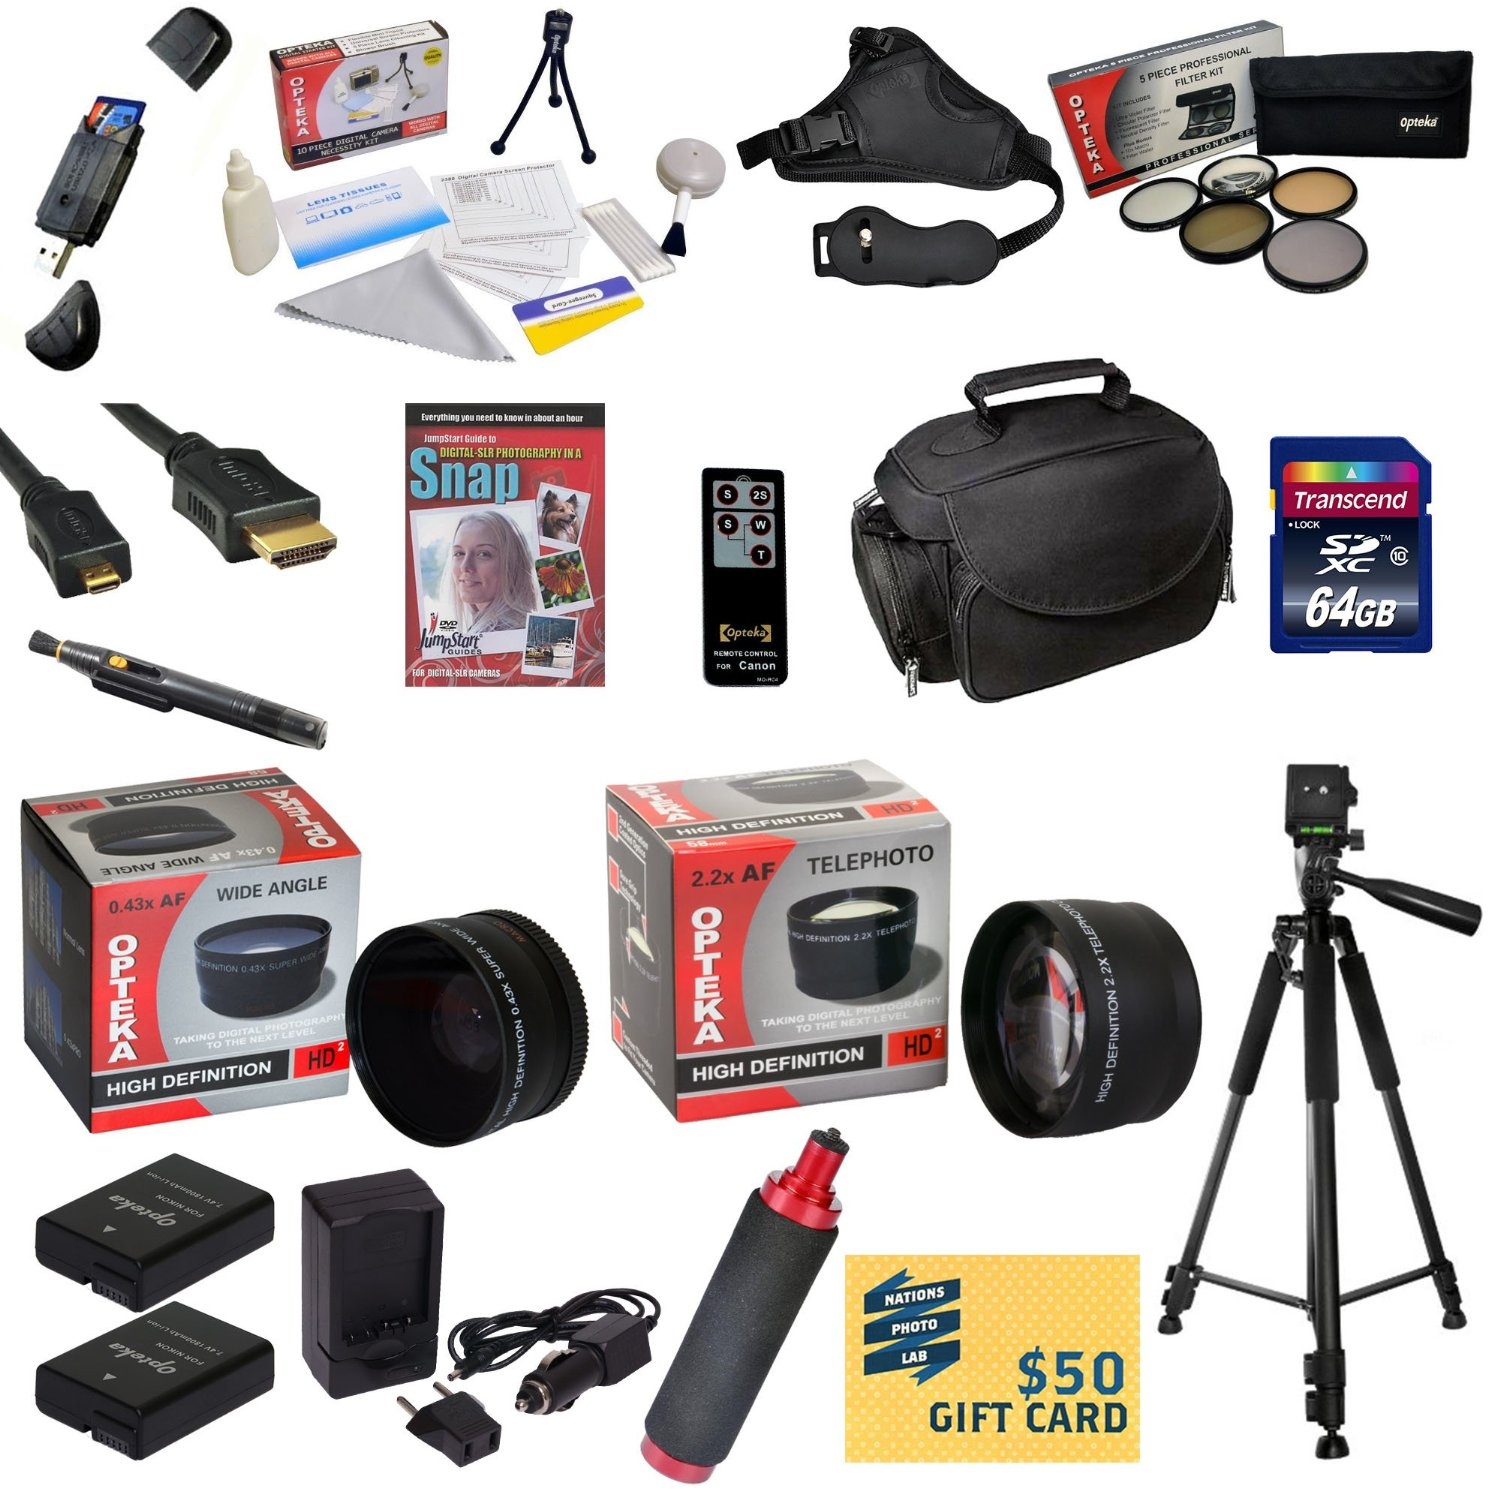 Ultimate Kit for Nikon D40 D40x D60 D3000 D5000 with 64GB SDXC Card, 2 Batteries, Charger, 0.43x & 2.2x Lens,... by Opteka